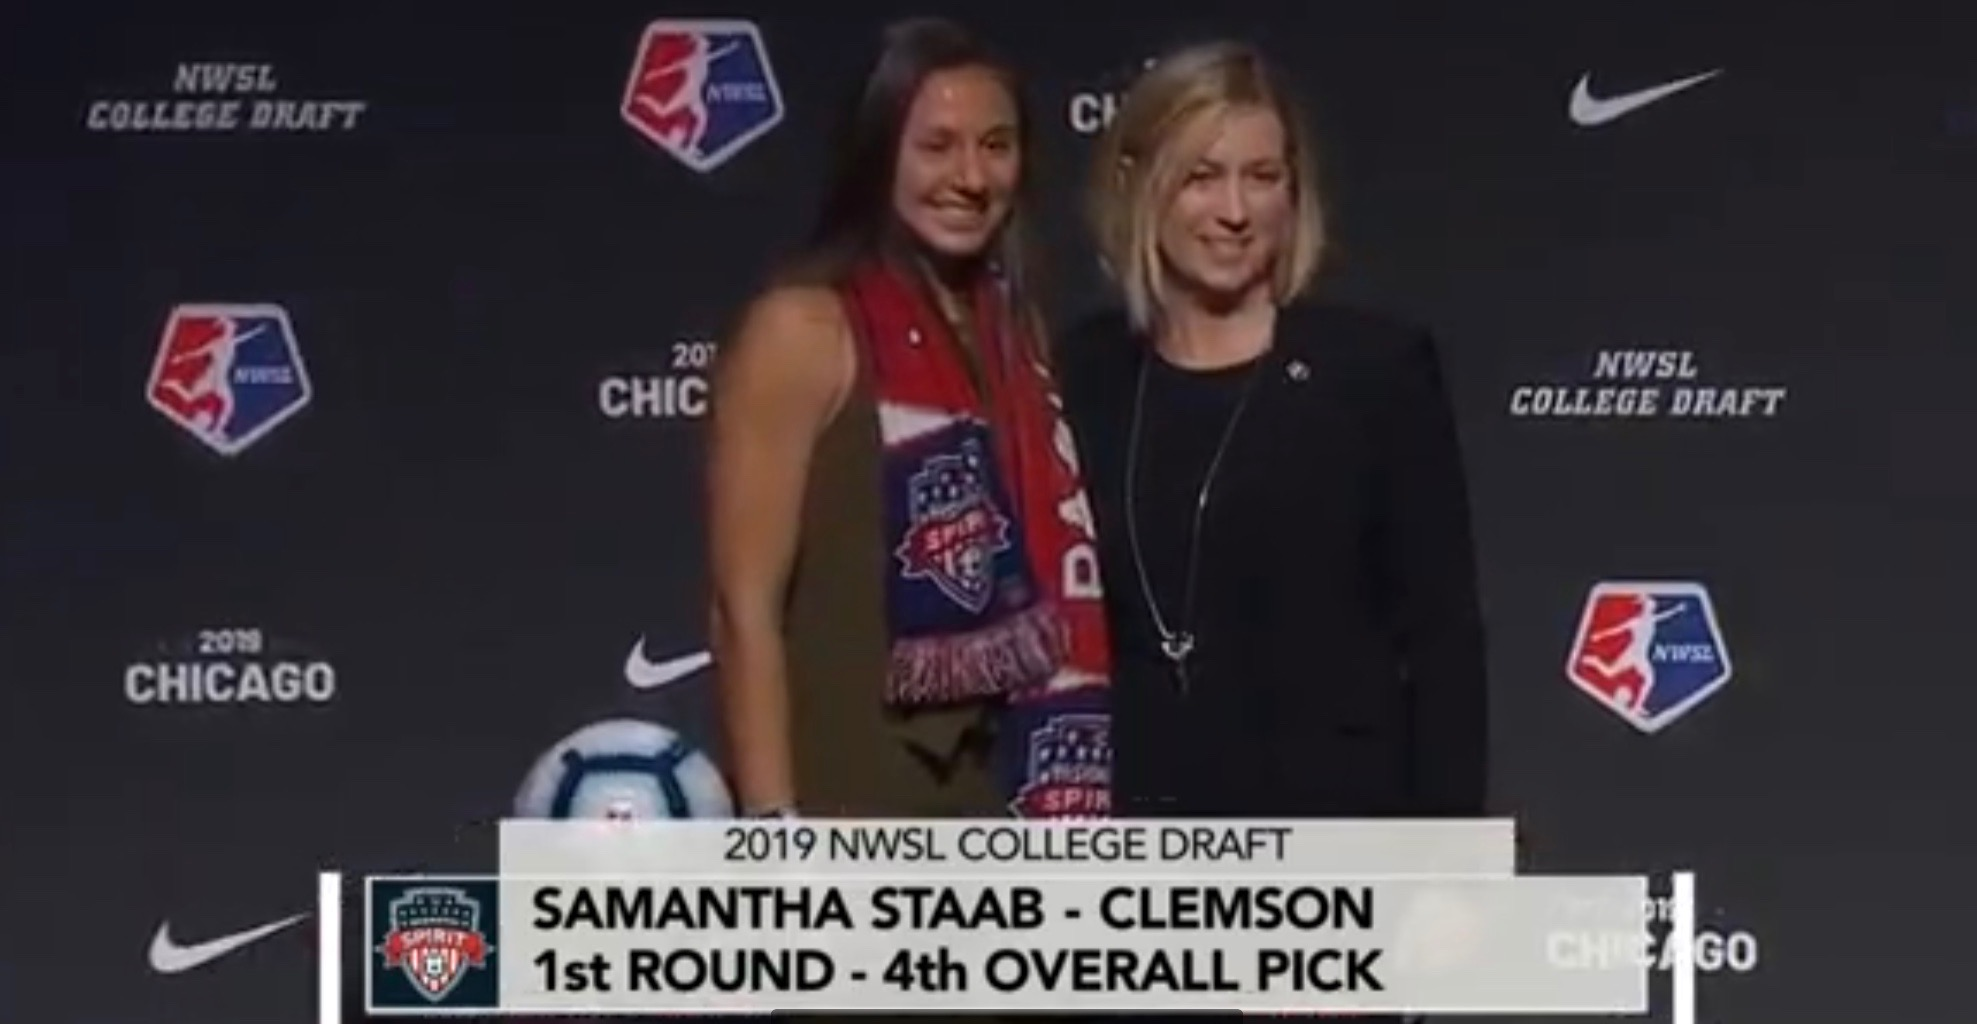 San Diego Homegrown Going Pro: Sam Staab drafted #4 in NWSL 2019 Draft